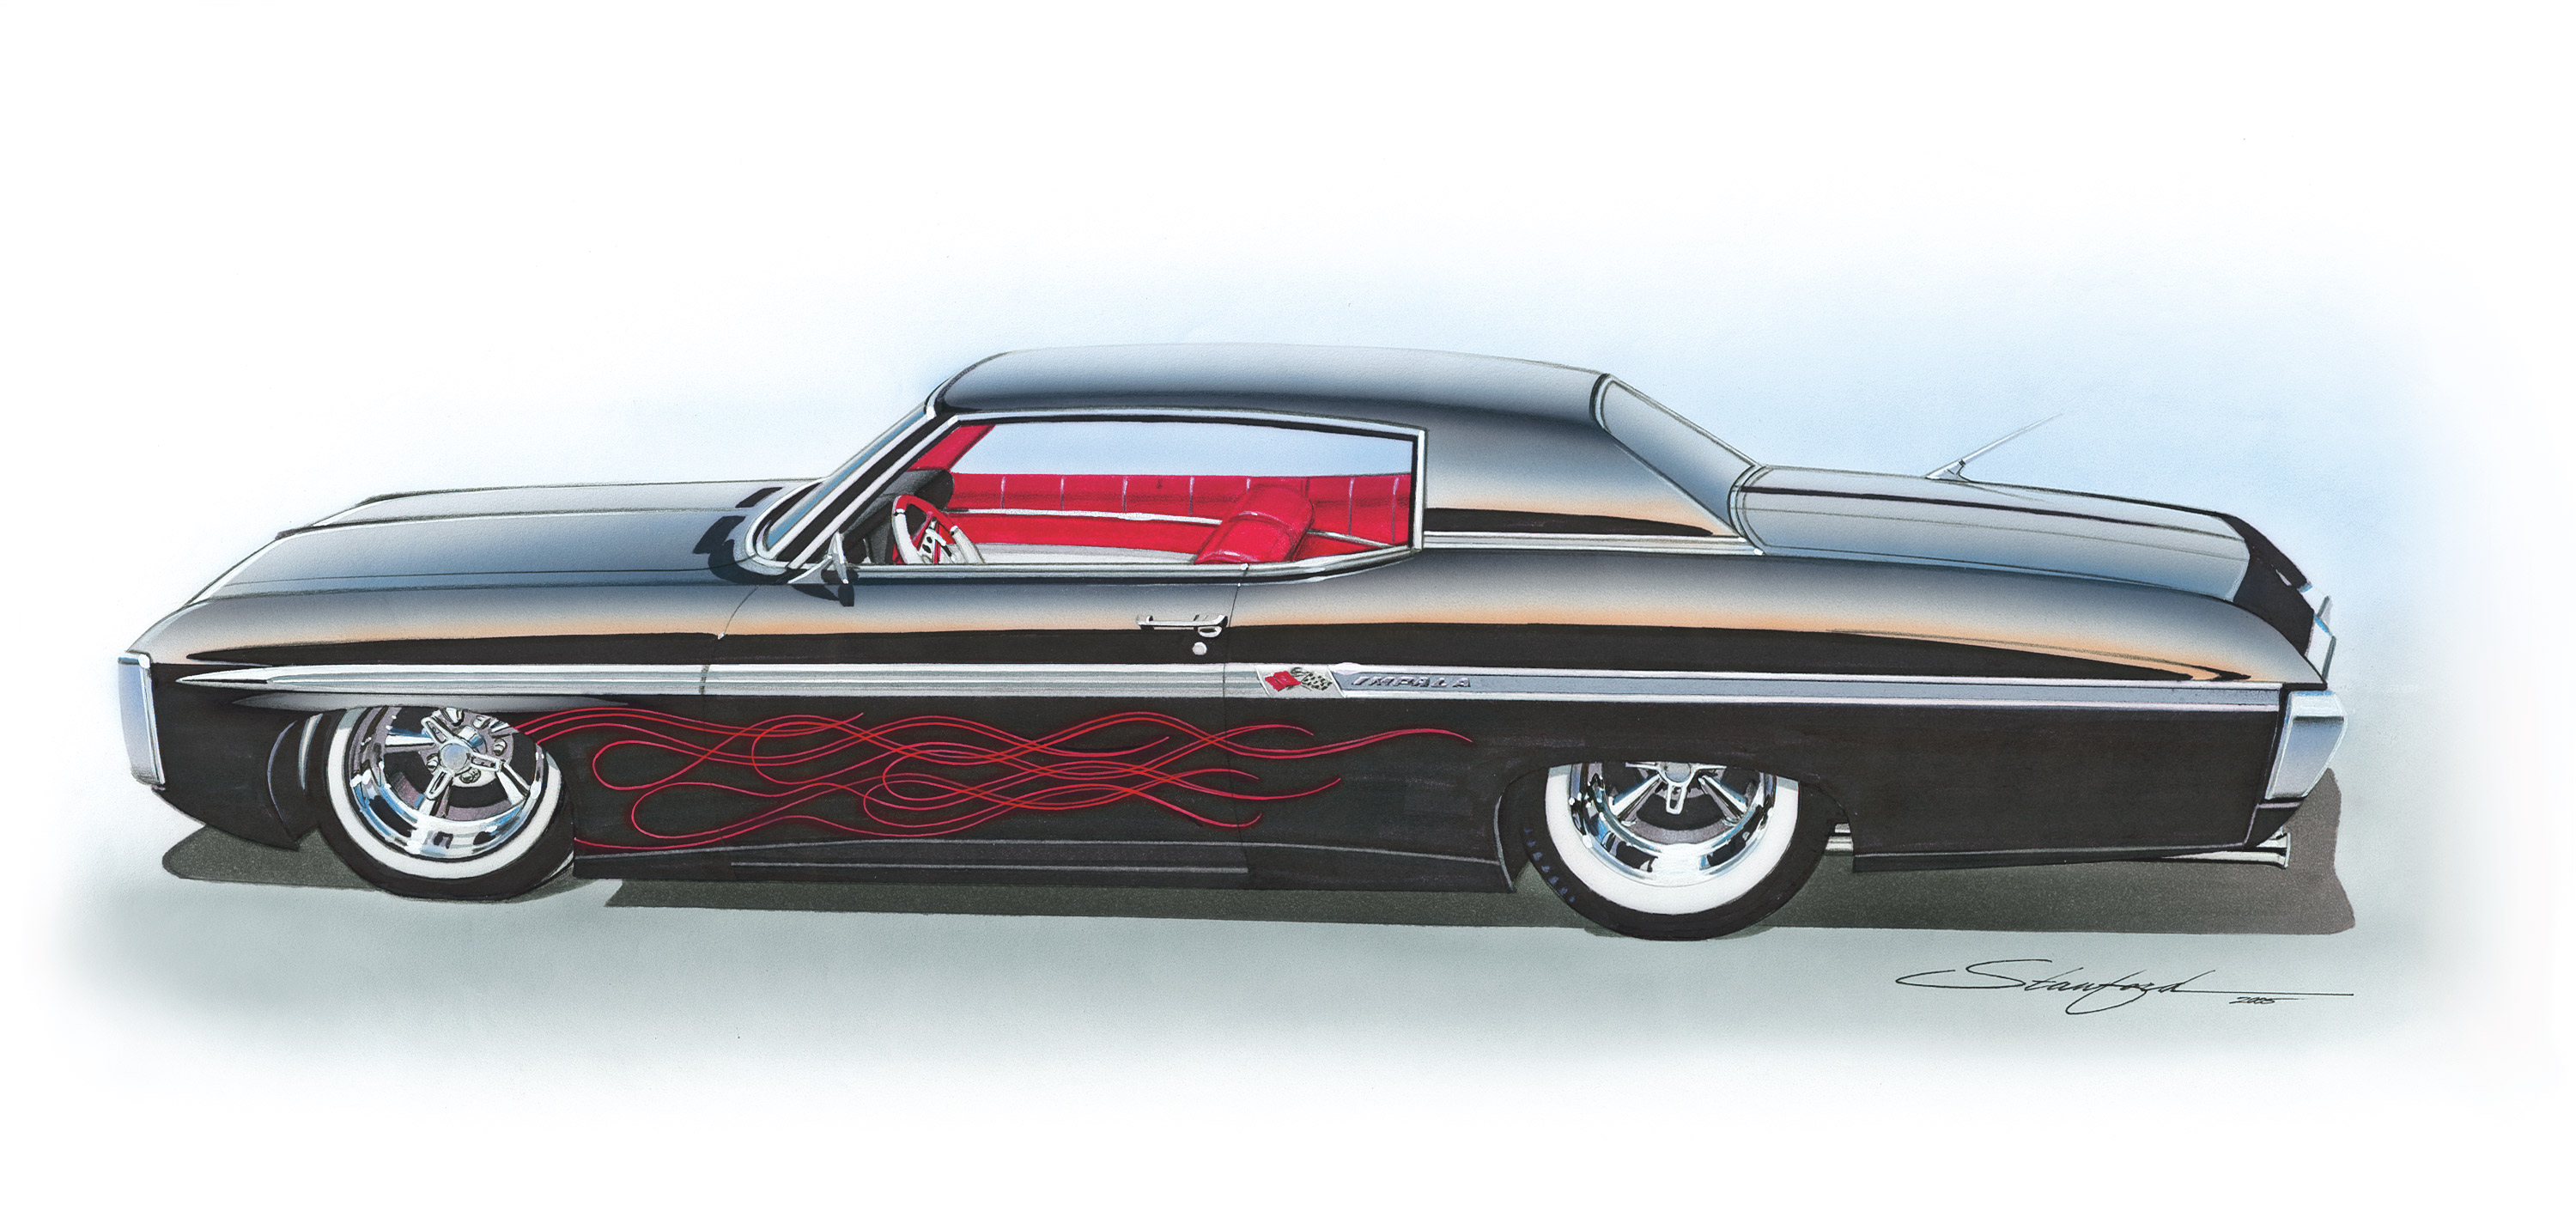 Chevy Hot Rod Impala Lowrider Classic Muscle Cars Wallpaper Background